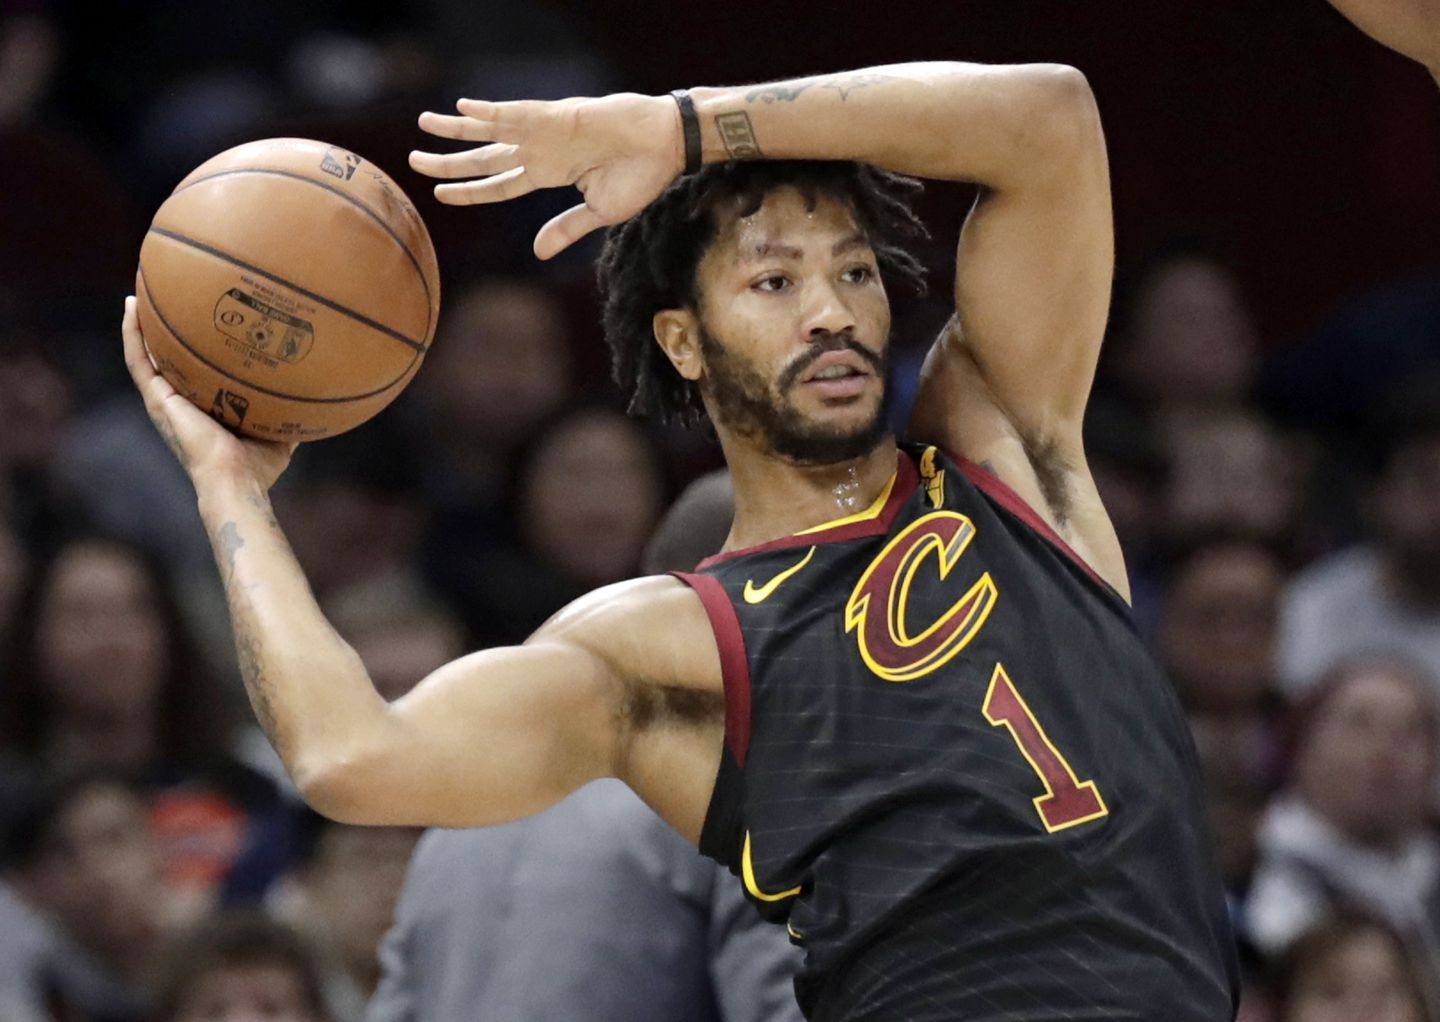 fb05db29ad2b Derrick Rose signs with Timberwolves - The Boston Globe